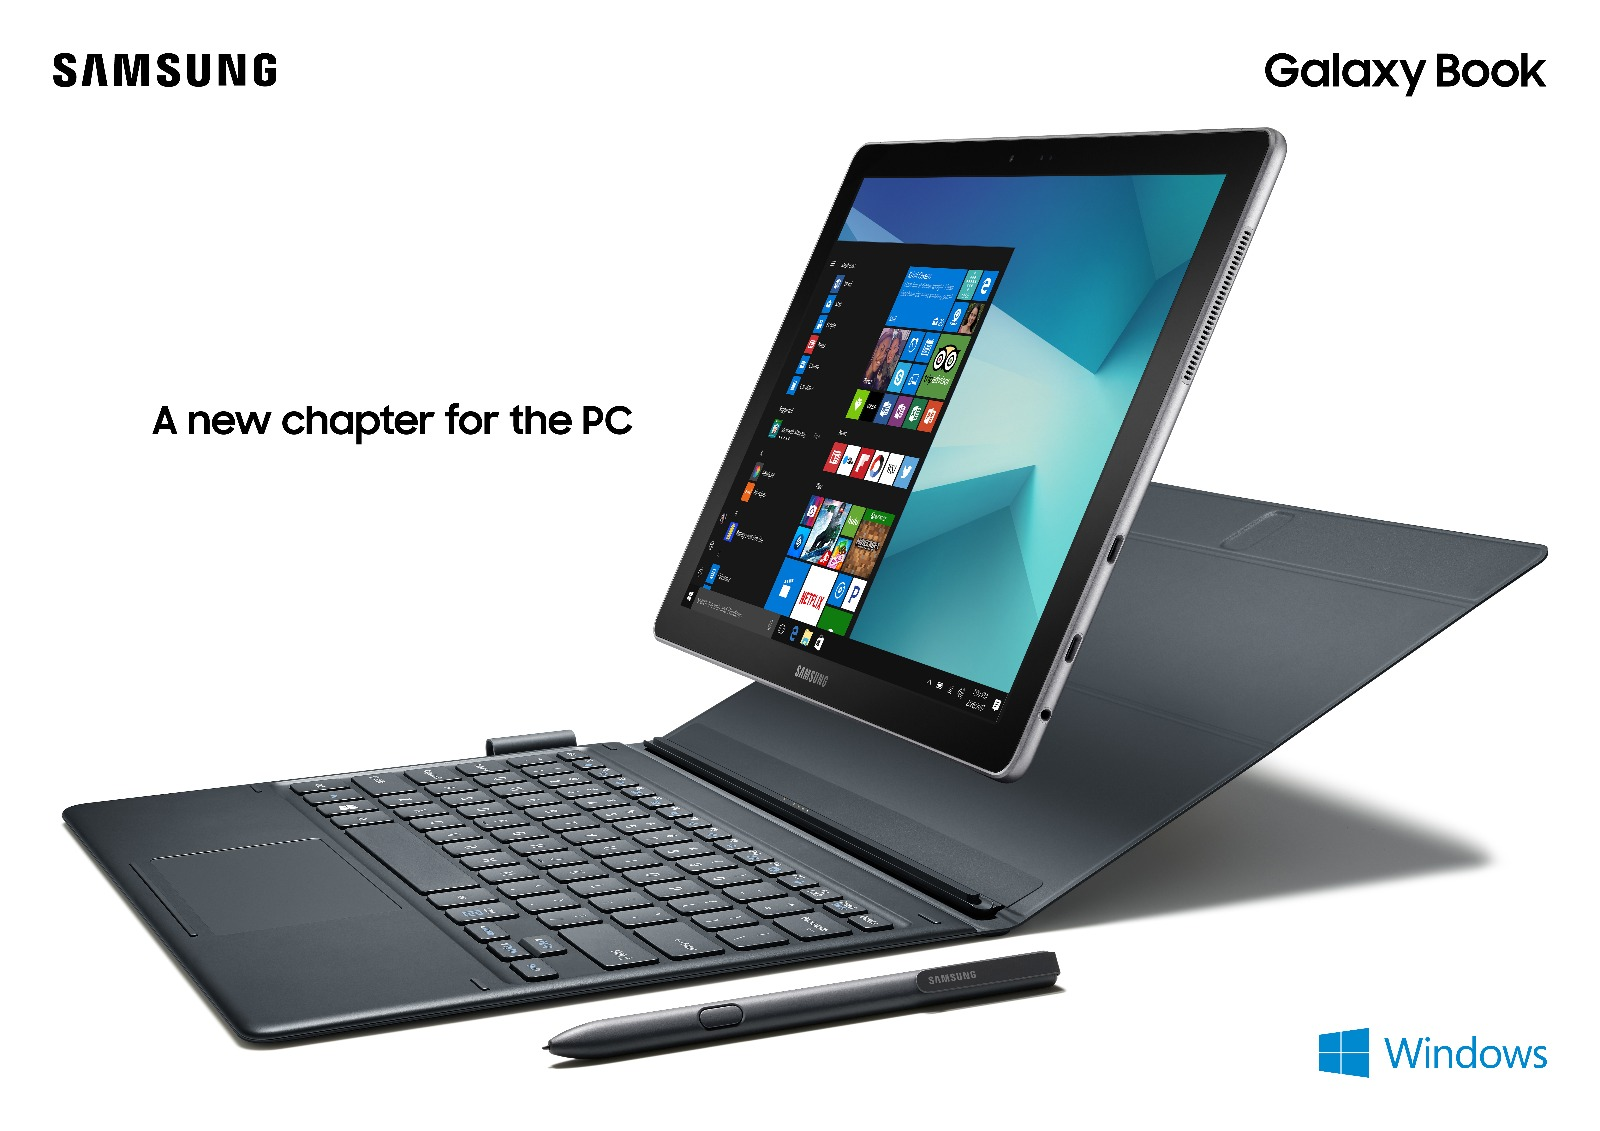 Samsung ufficializza Galaxy Book con Windows 10!